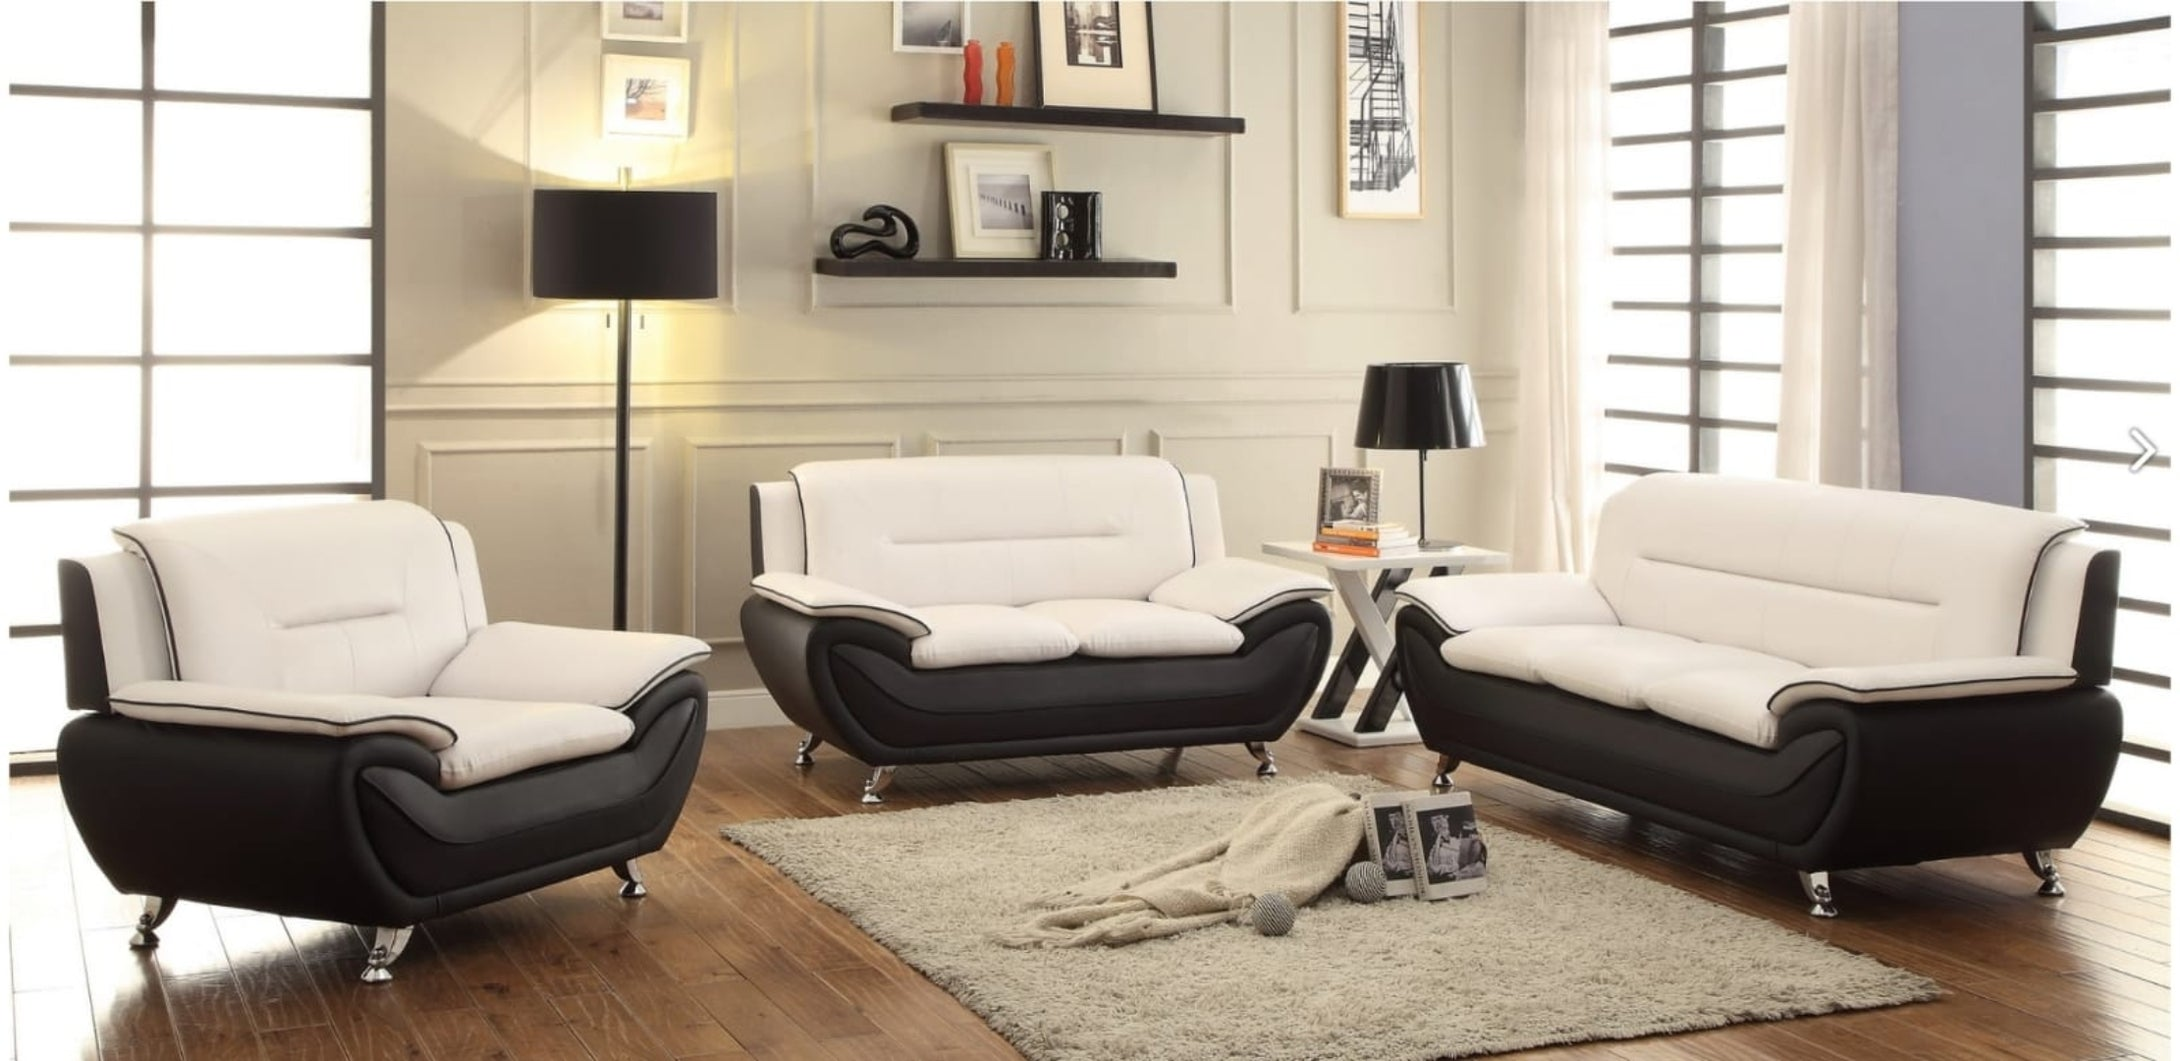 Speedy 2, 3 pc sofa set - Infiniteimports